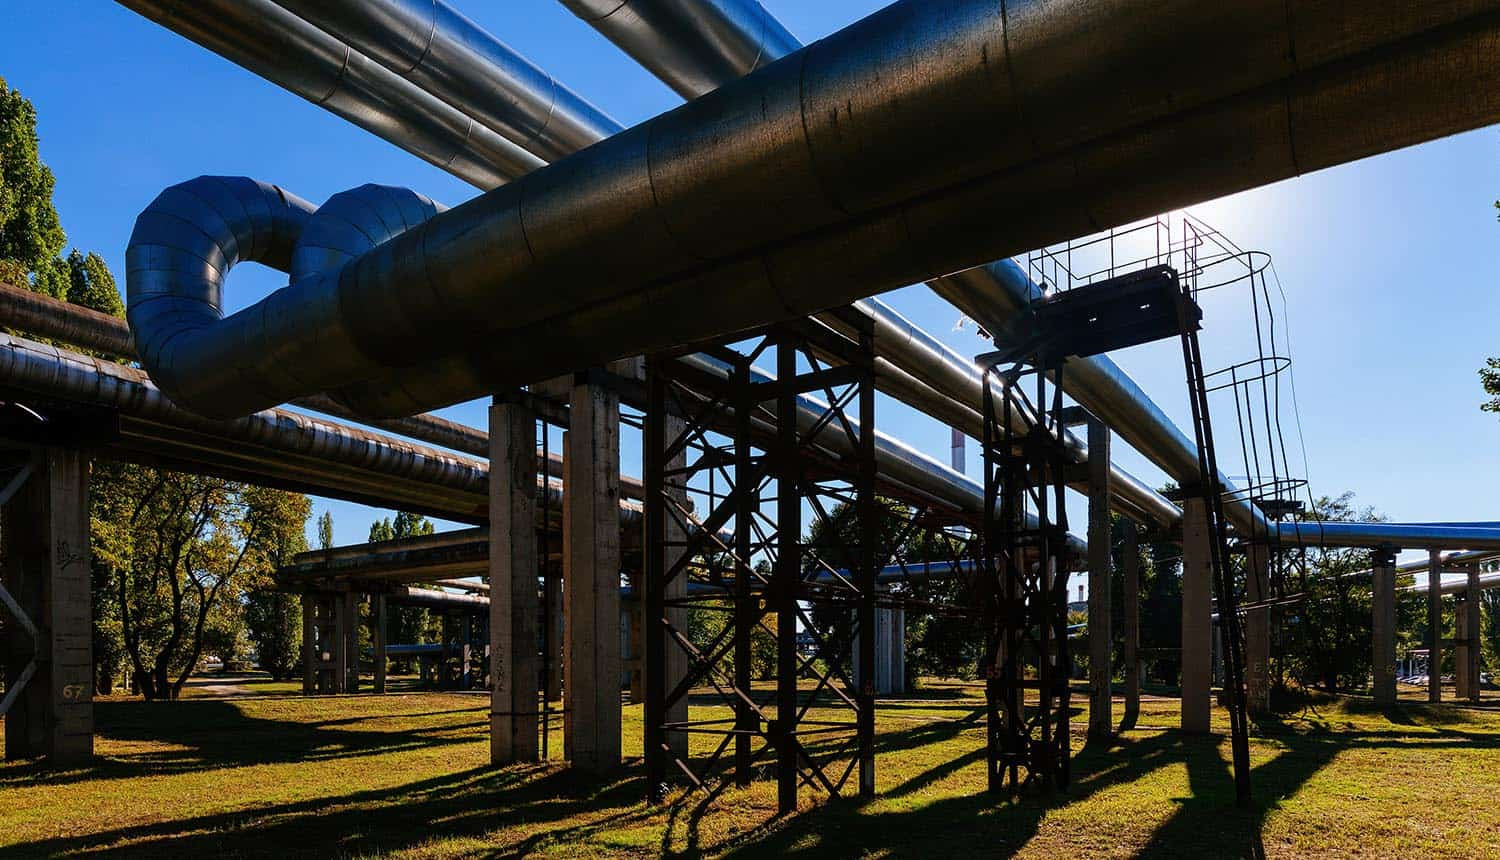 Steel pipelines outgoing from the plant on sunny day showing killware as cybersecurity threat